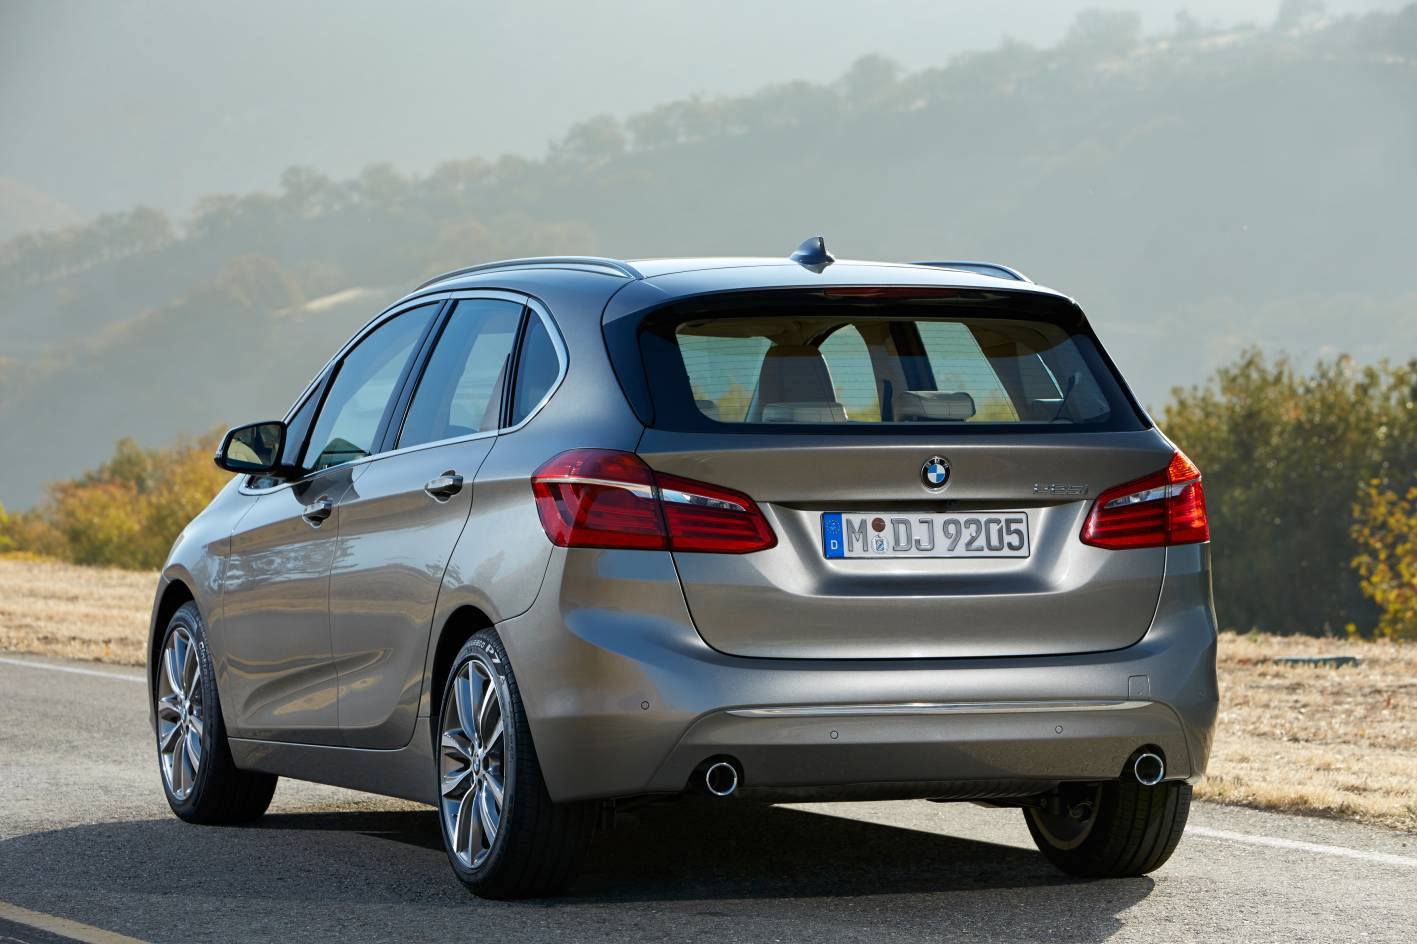 bmw 2 series active tourer revealed first ever fwd bmw. Black Bedroom Furniture Sets. Home Design Ideas